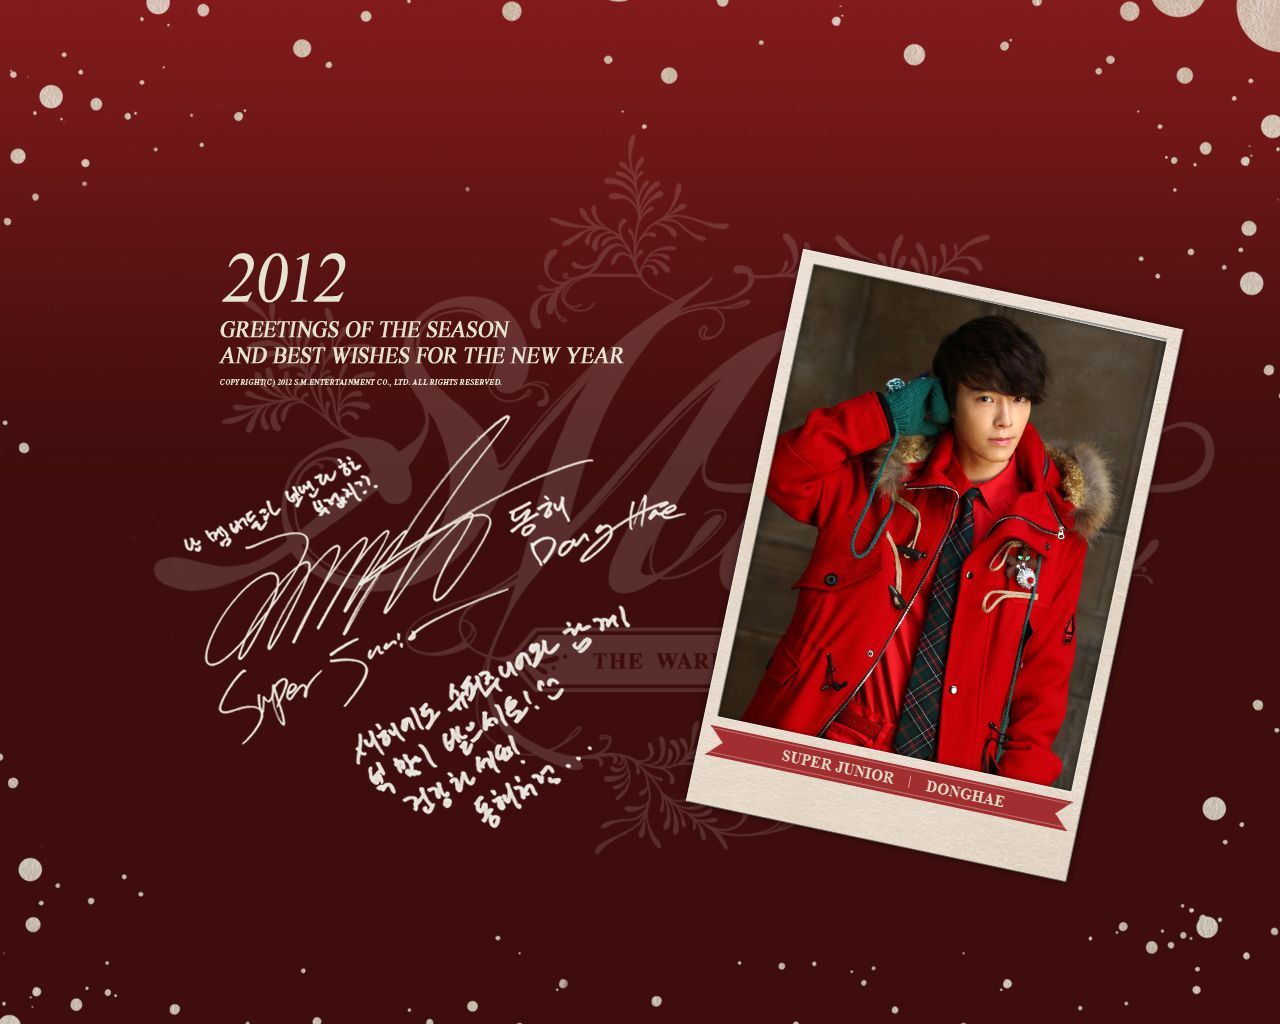 dekstop background lee donghae wallpaper with signature